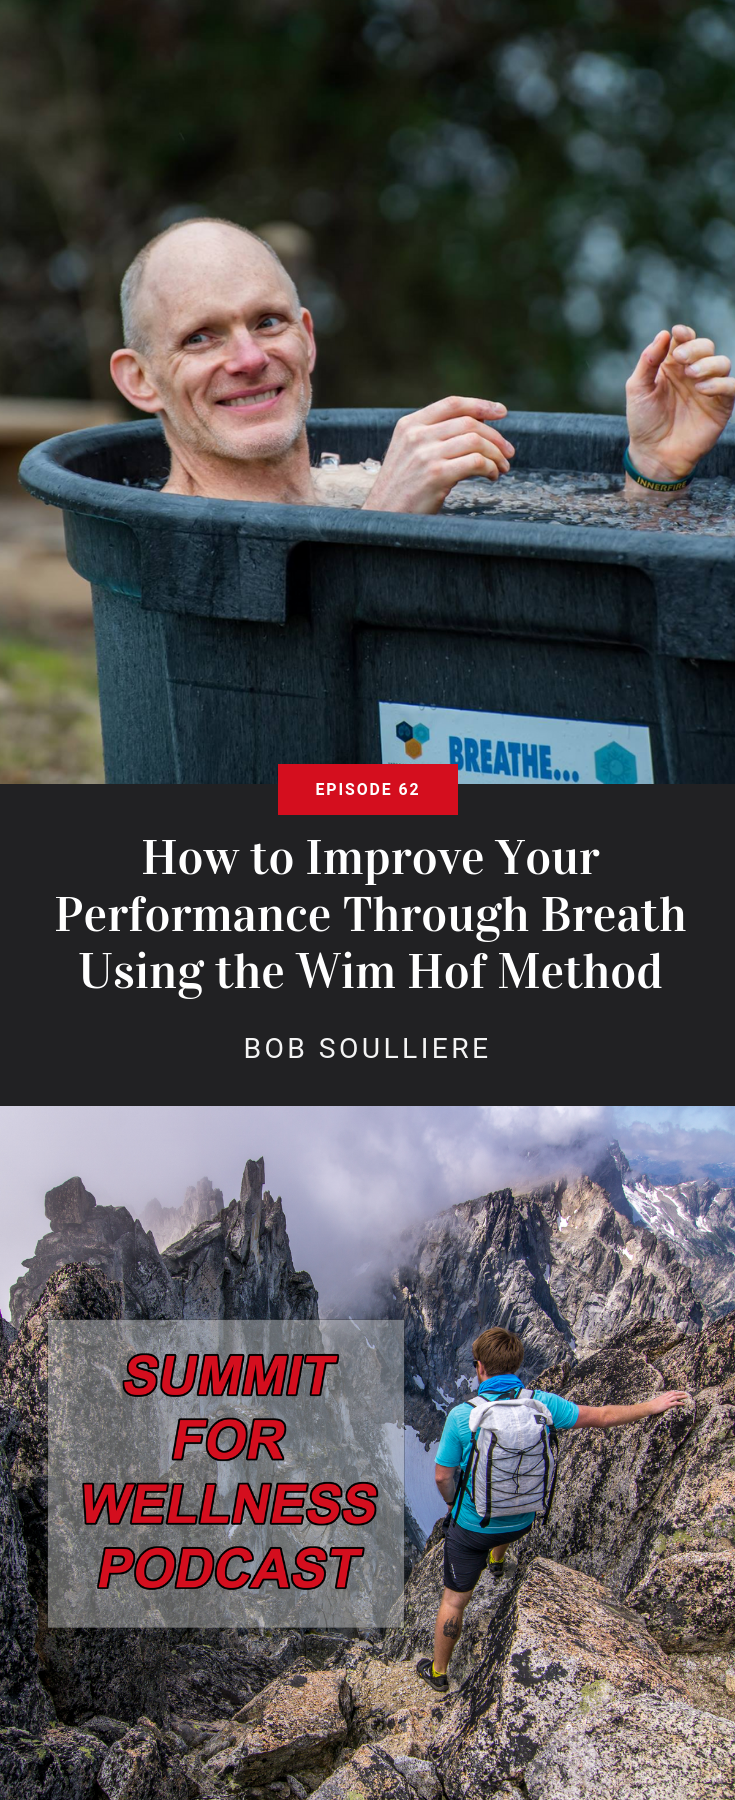 Bob Soulliere teaches us how the Wim Hof Method improves our ability to control our breath so we can increase our performance and learn how to relax.